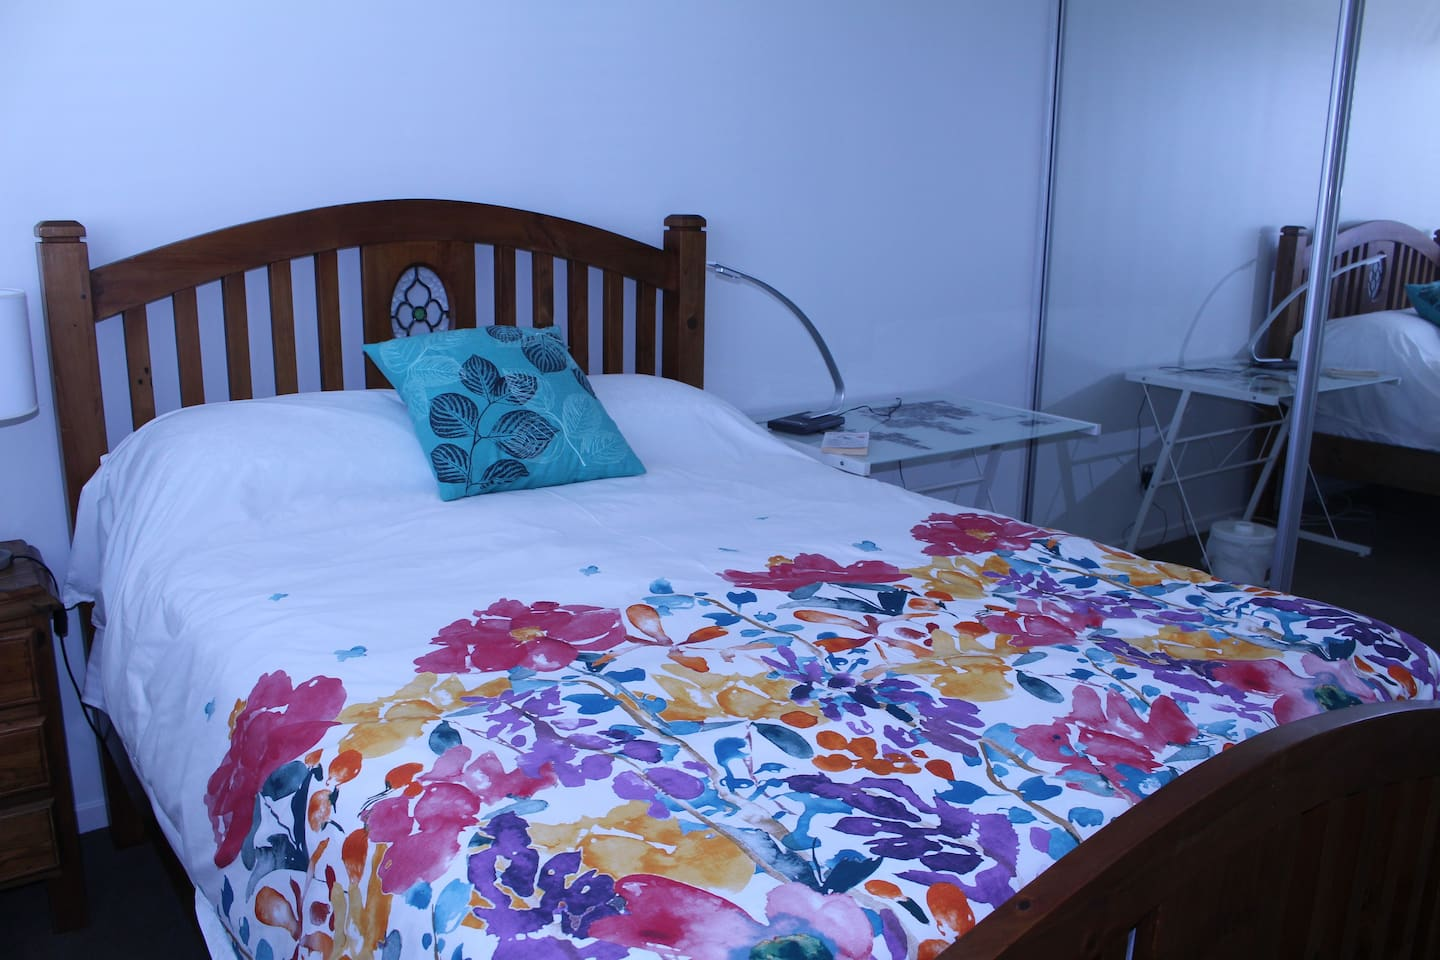 Comfy double bed with brand new sheets and pillows